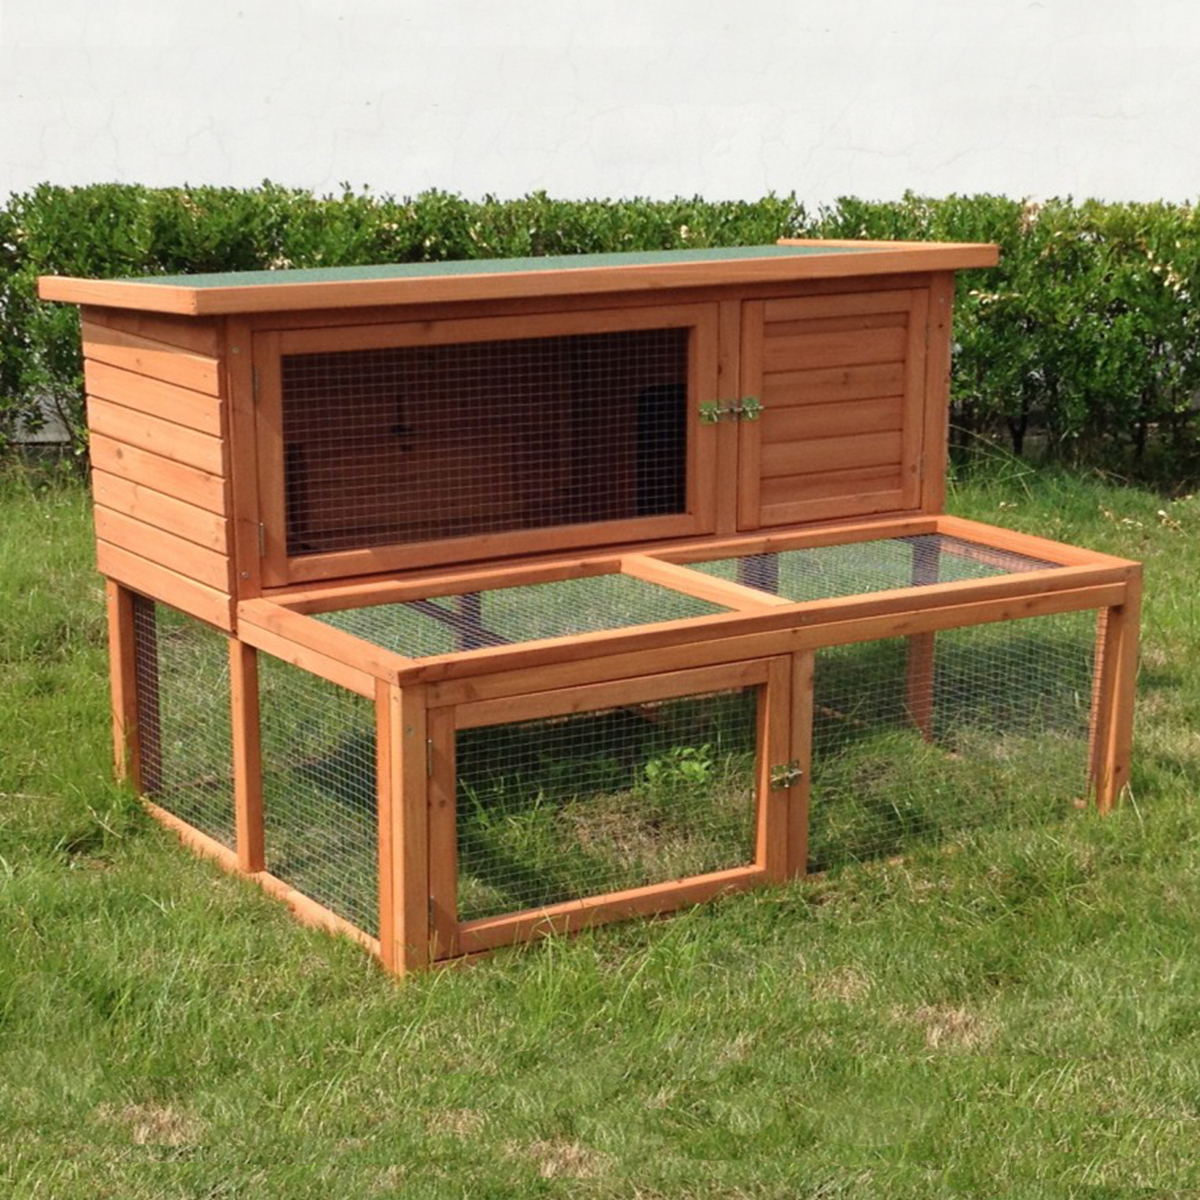 pet dp hutch hutches trixie new rabbit with garden com outdoor small products amazon run extra